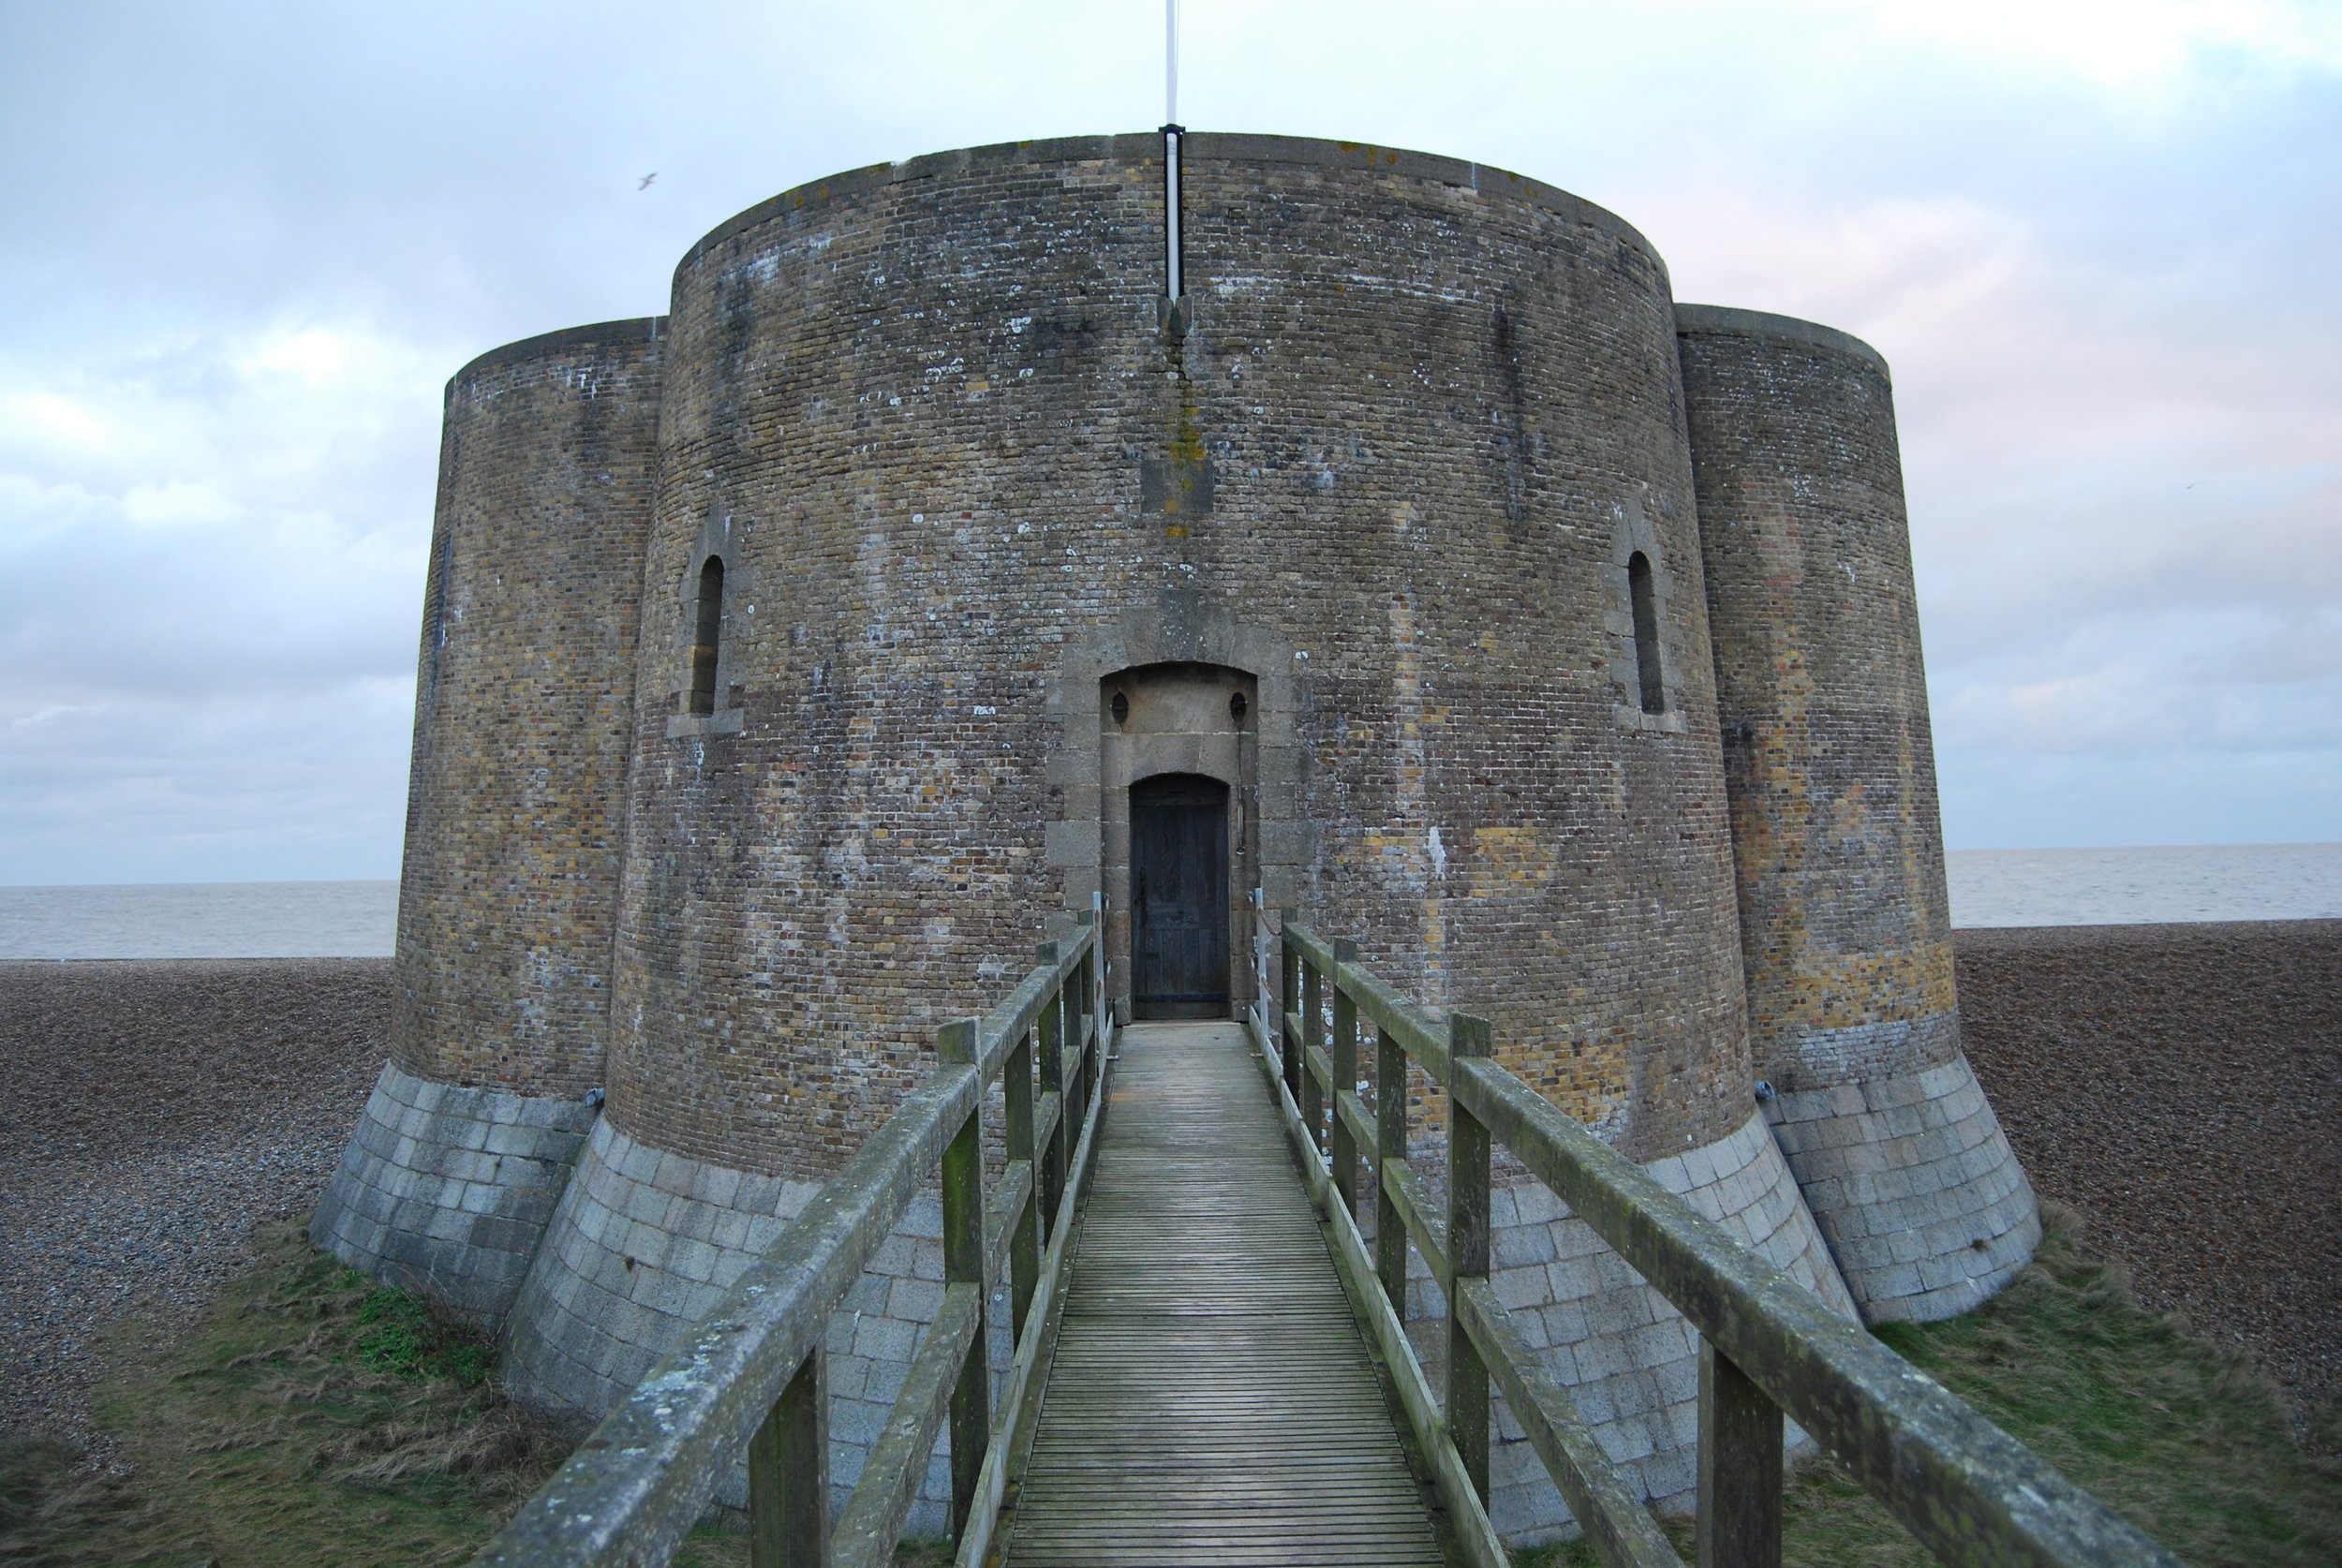 Martello Tower, Aldeburgh, Suffolk February 2015